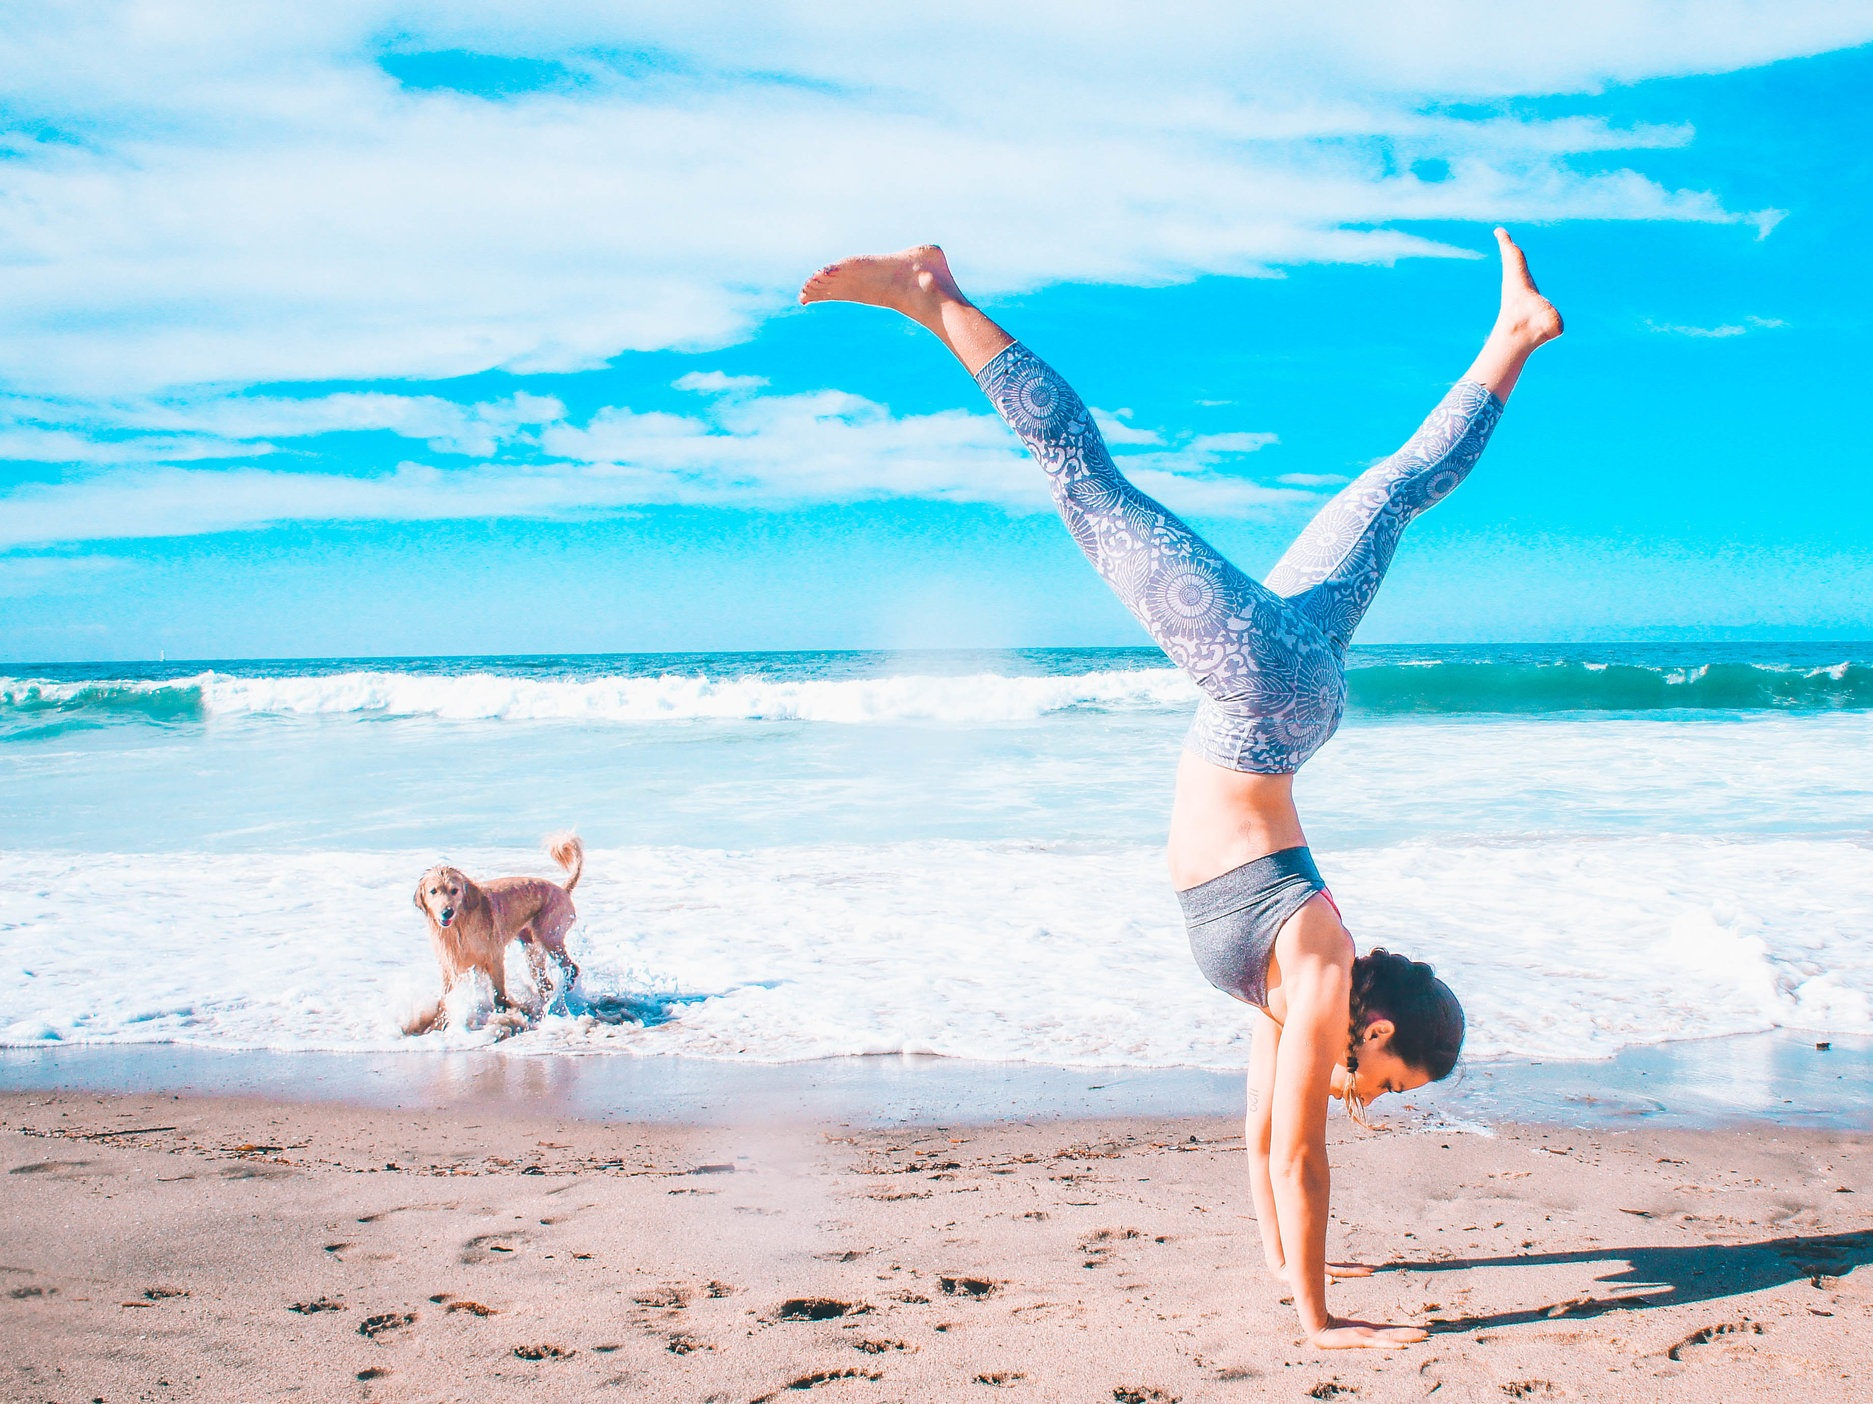 A woman plays in handstand on a beach with a brown dog in the background